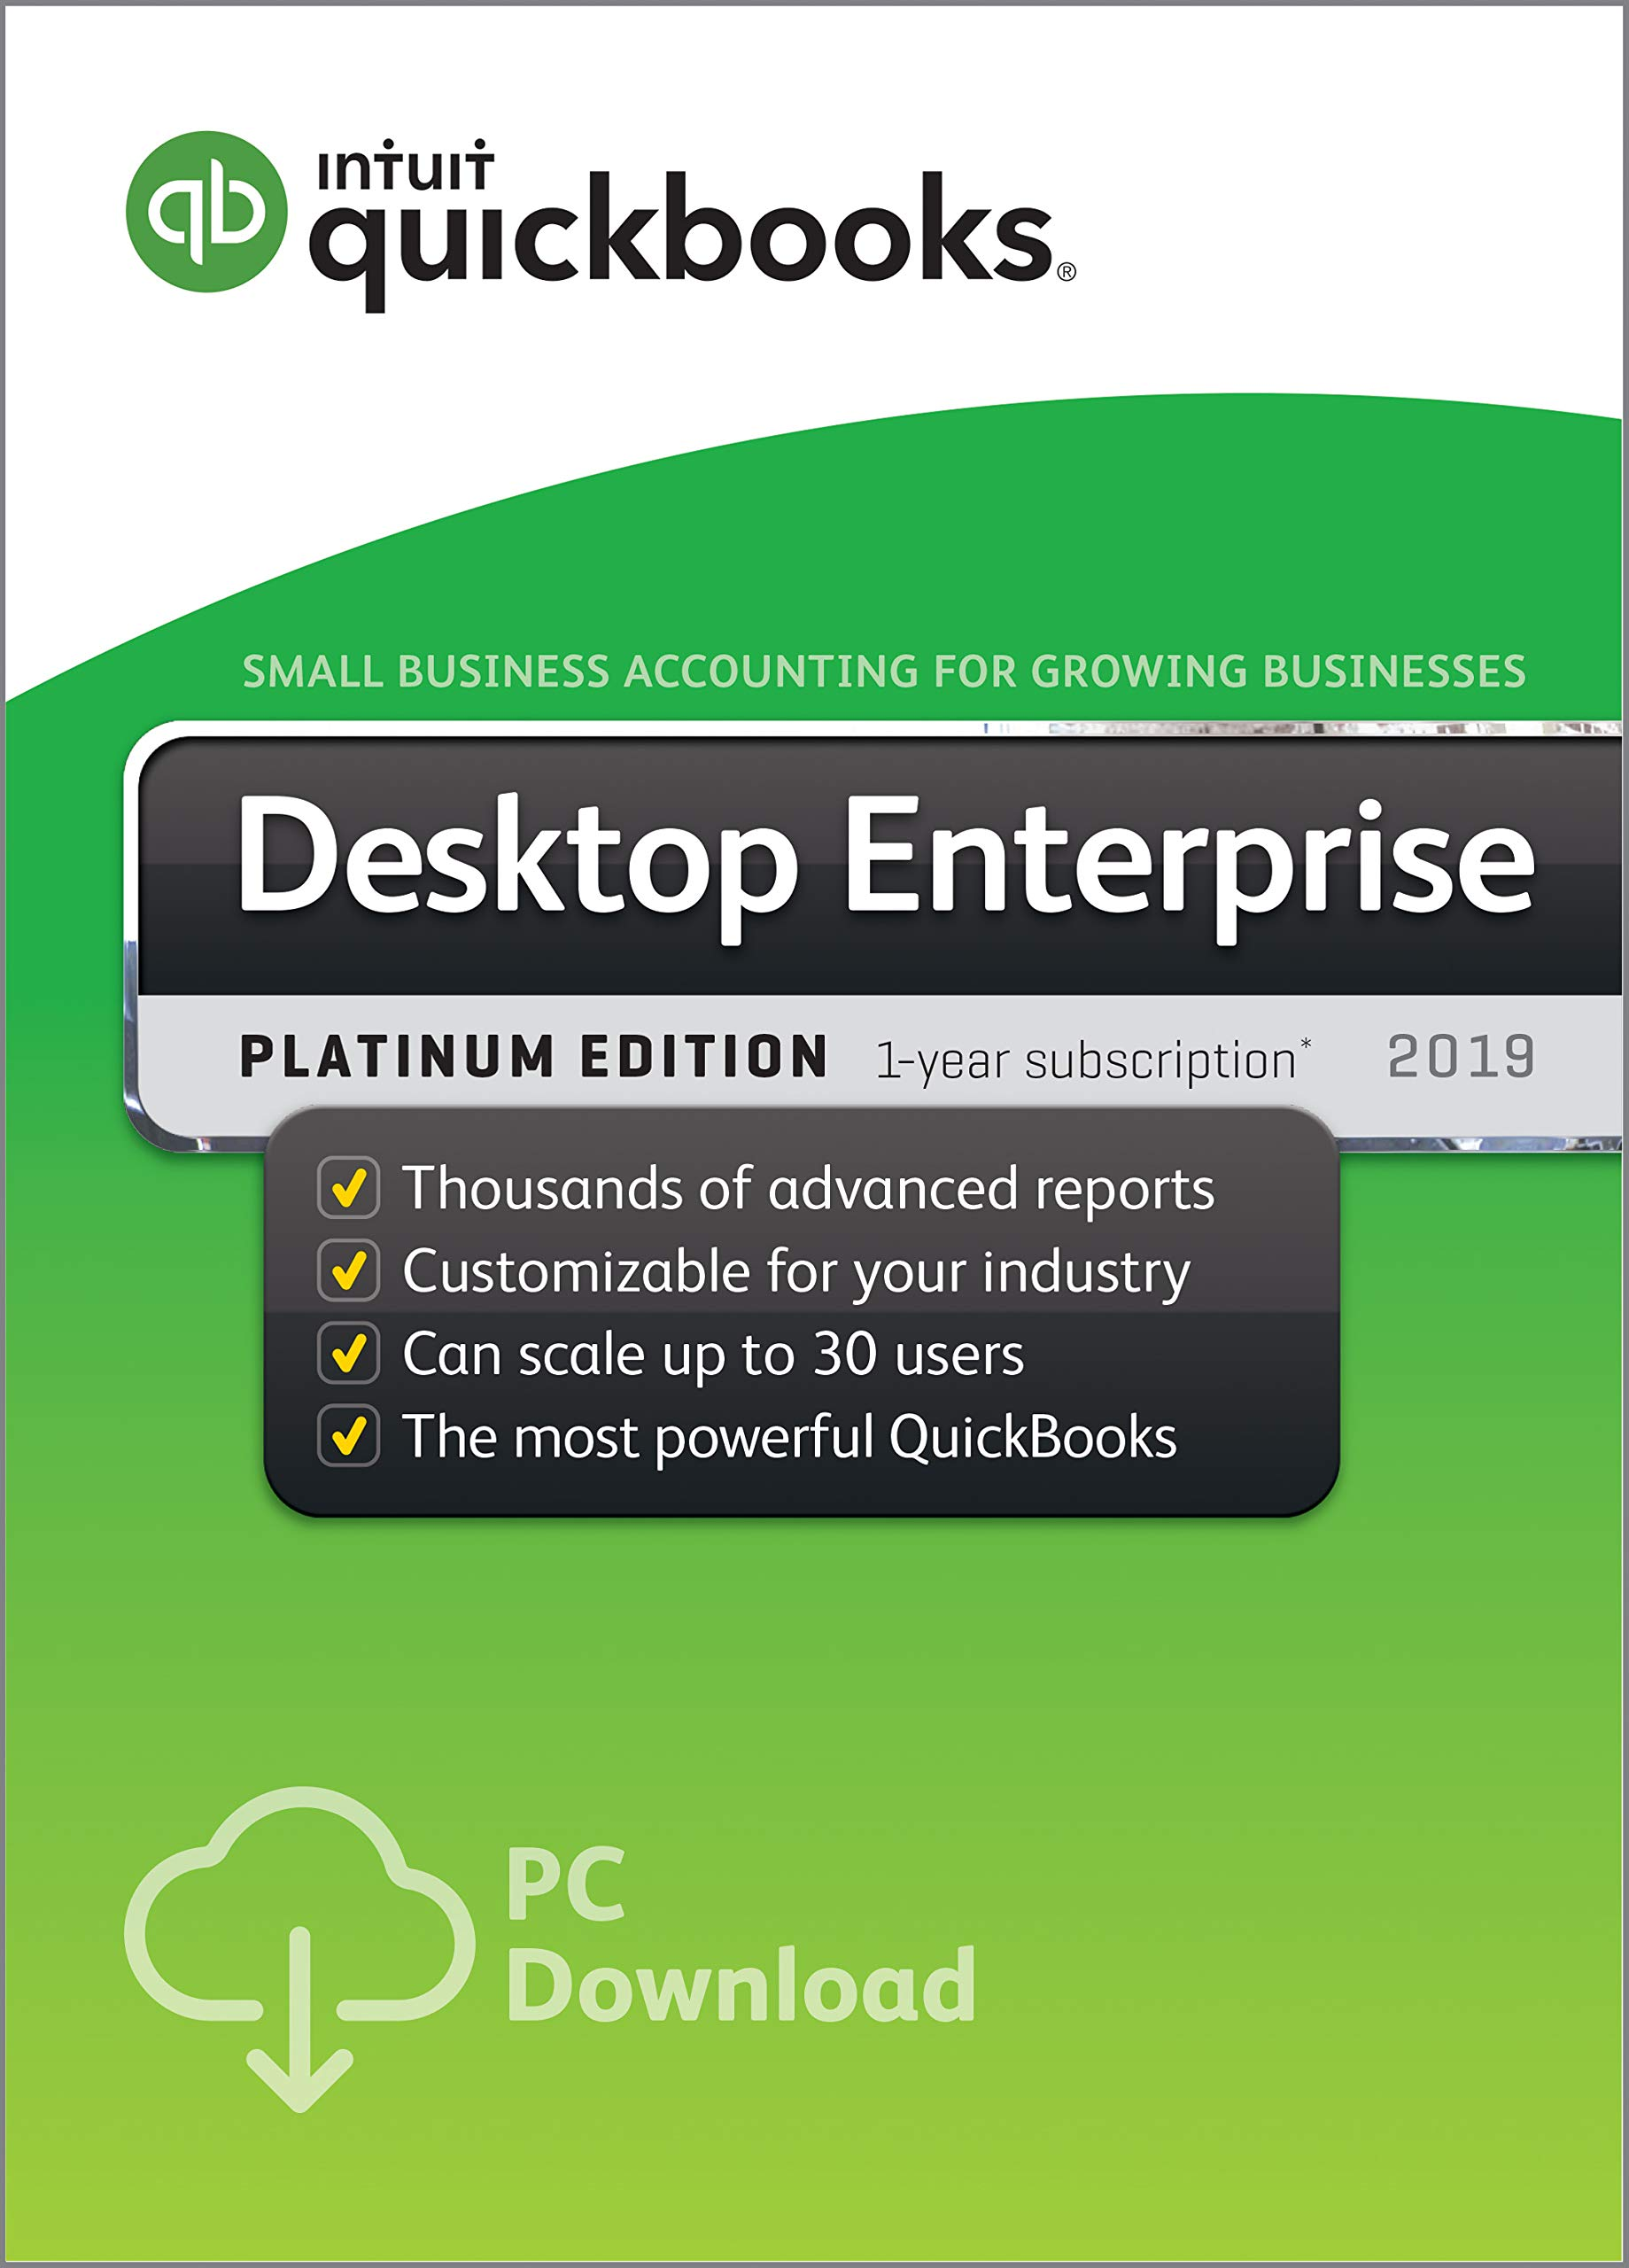 QuickBooks Desktop Enterprise Platinum 2019, 5 User, 1 Year Subscription [PC Download] by Intuit